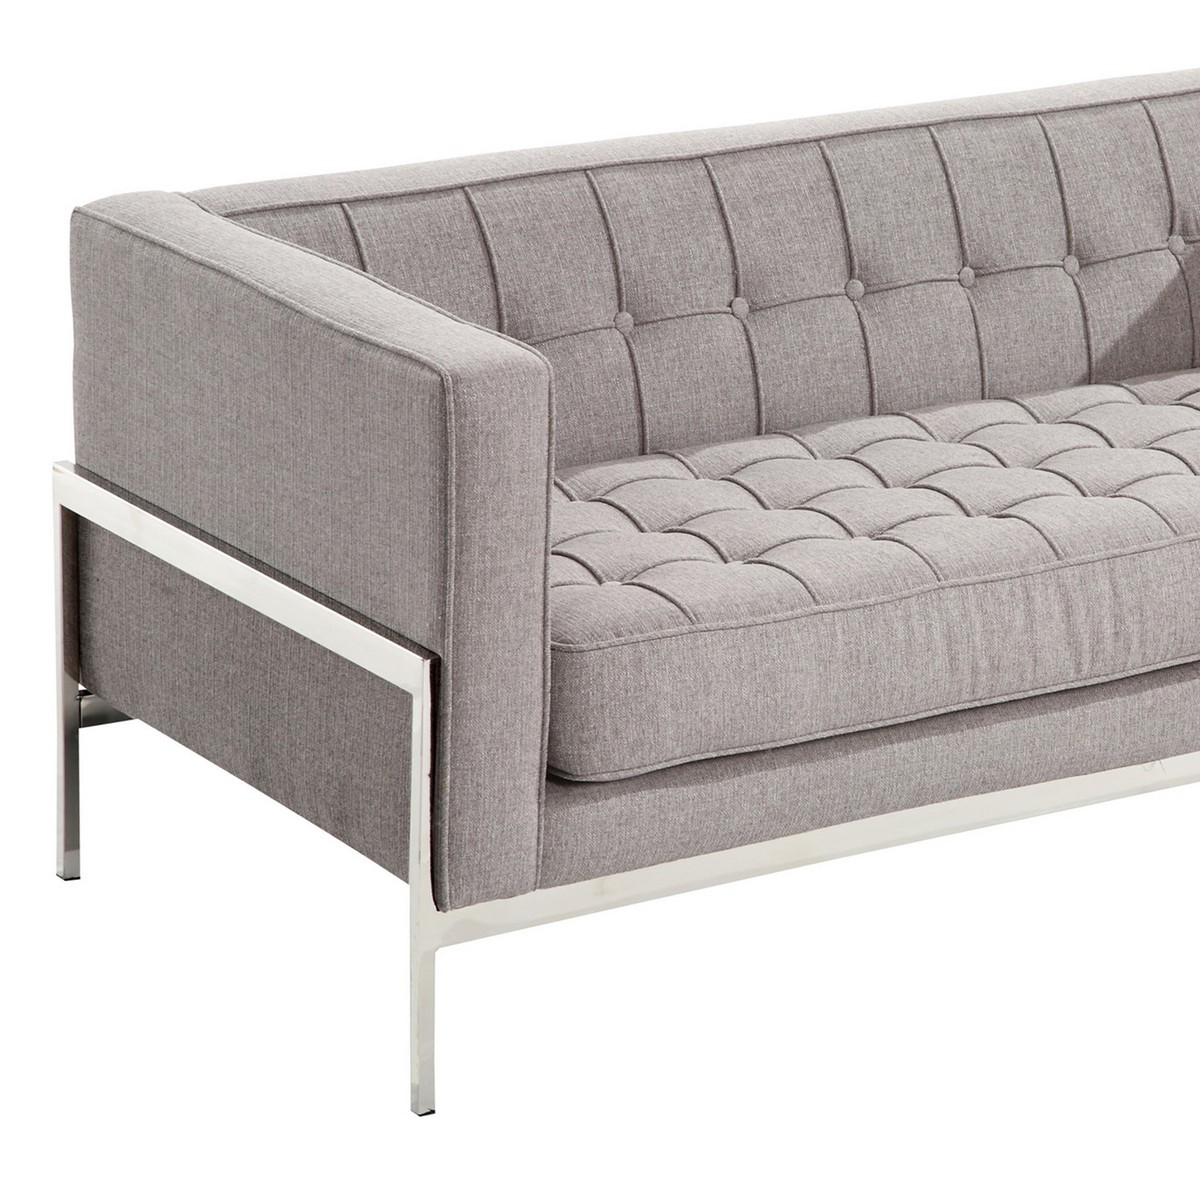 Armen Living Andre Contemporary Loveseat In Gray Tweed and Stainless Steel